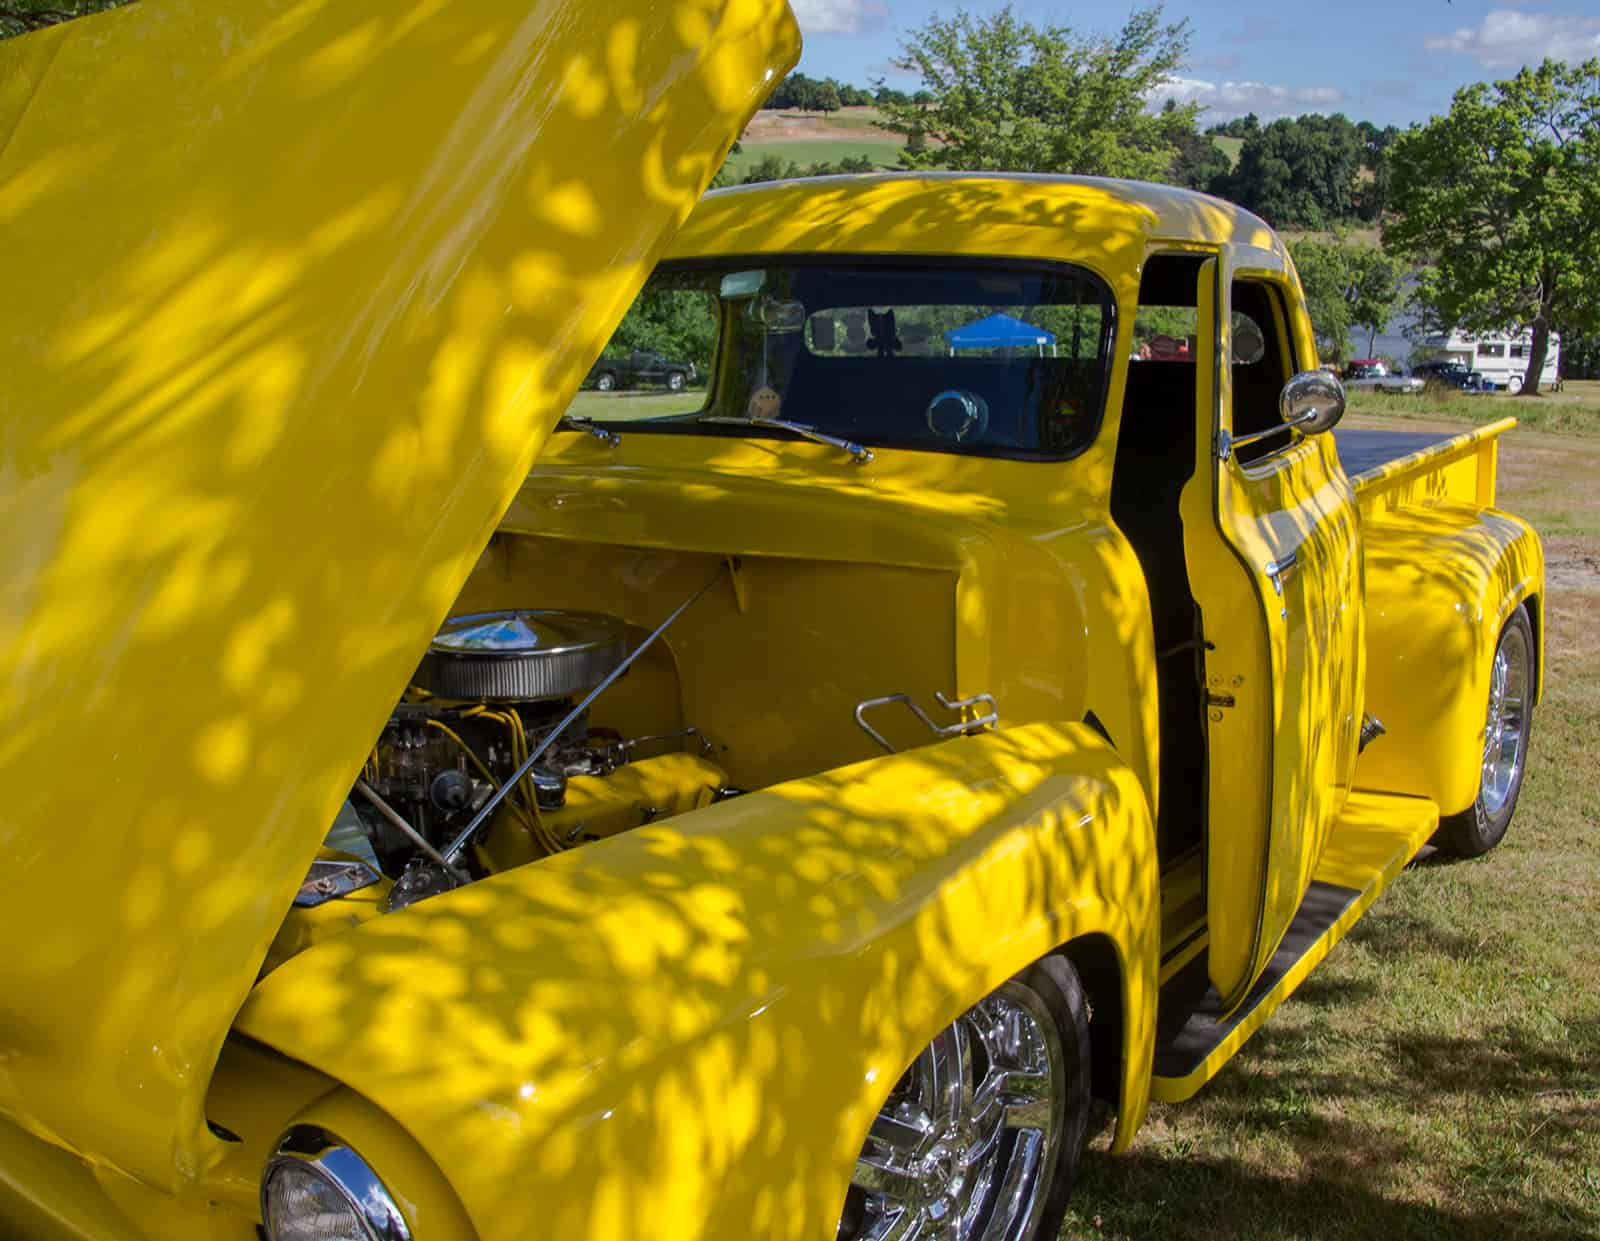 2016 Cars of Summer - Yellow 54 Ford Truck